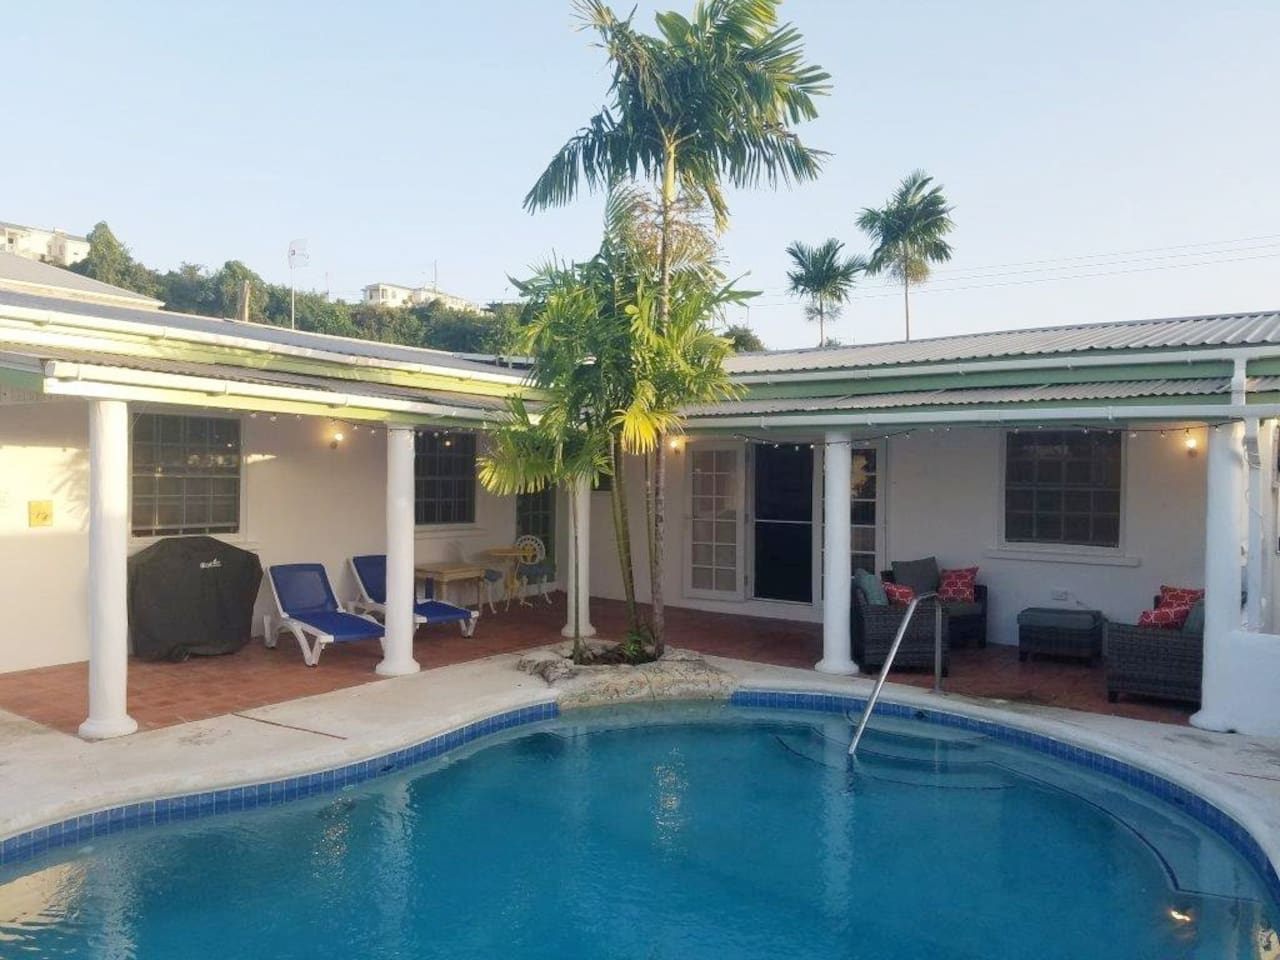 Luxury four bedrooms, 3 bathrooms villa with a private swimming pool, 5 mins walk to the fantastic sandy beach